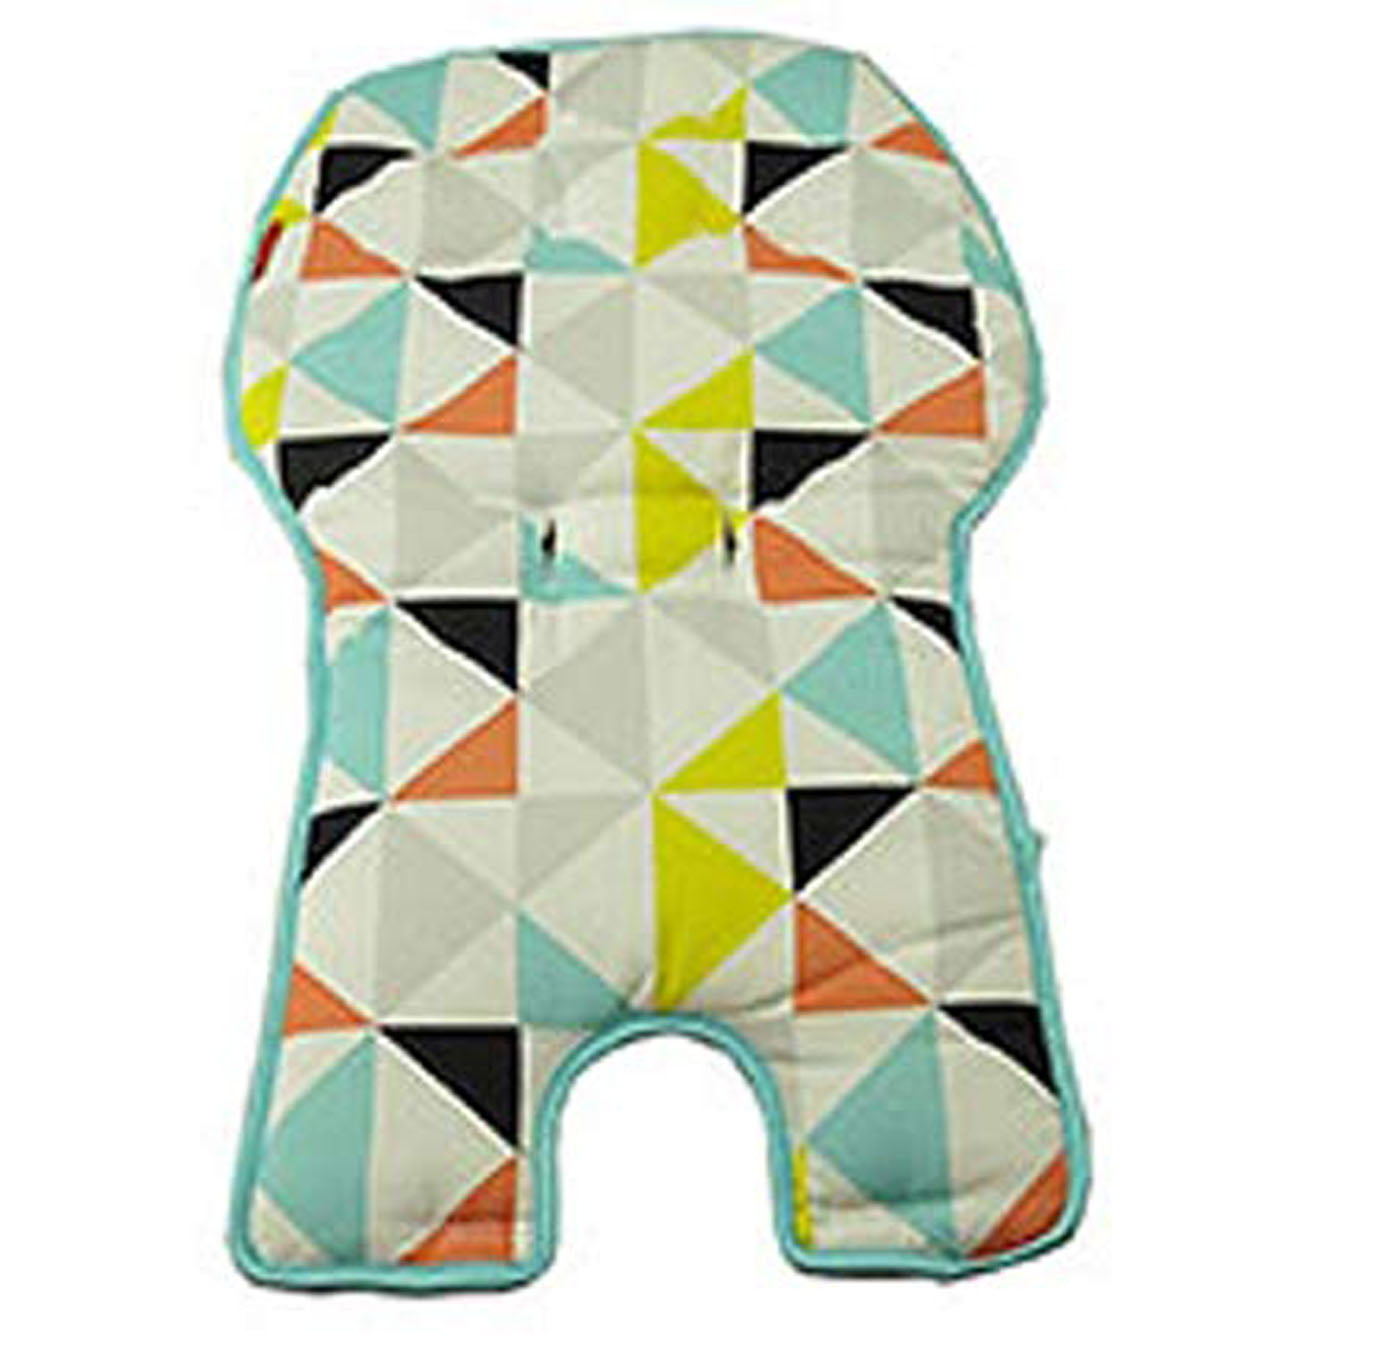 Replacement Seat Pad Cushion   Cover for Fisher Price SpaceSaver High Chair (FLG95 Multi Triangles) by Fisher-Price